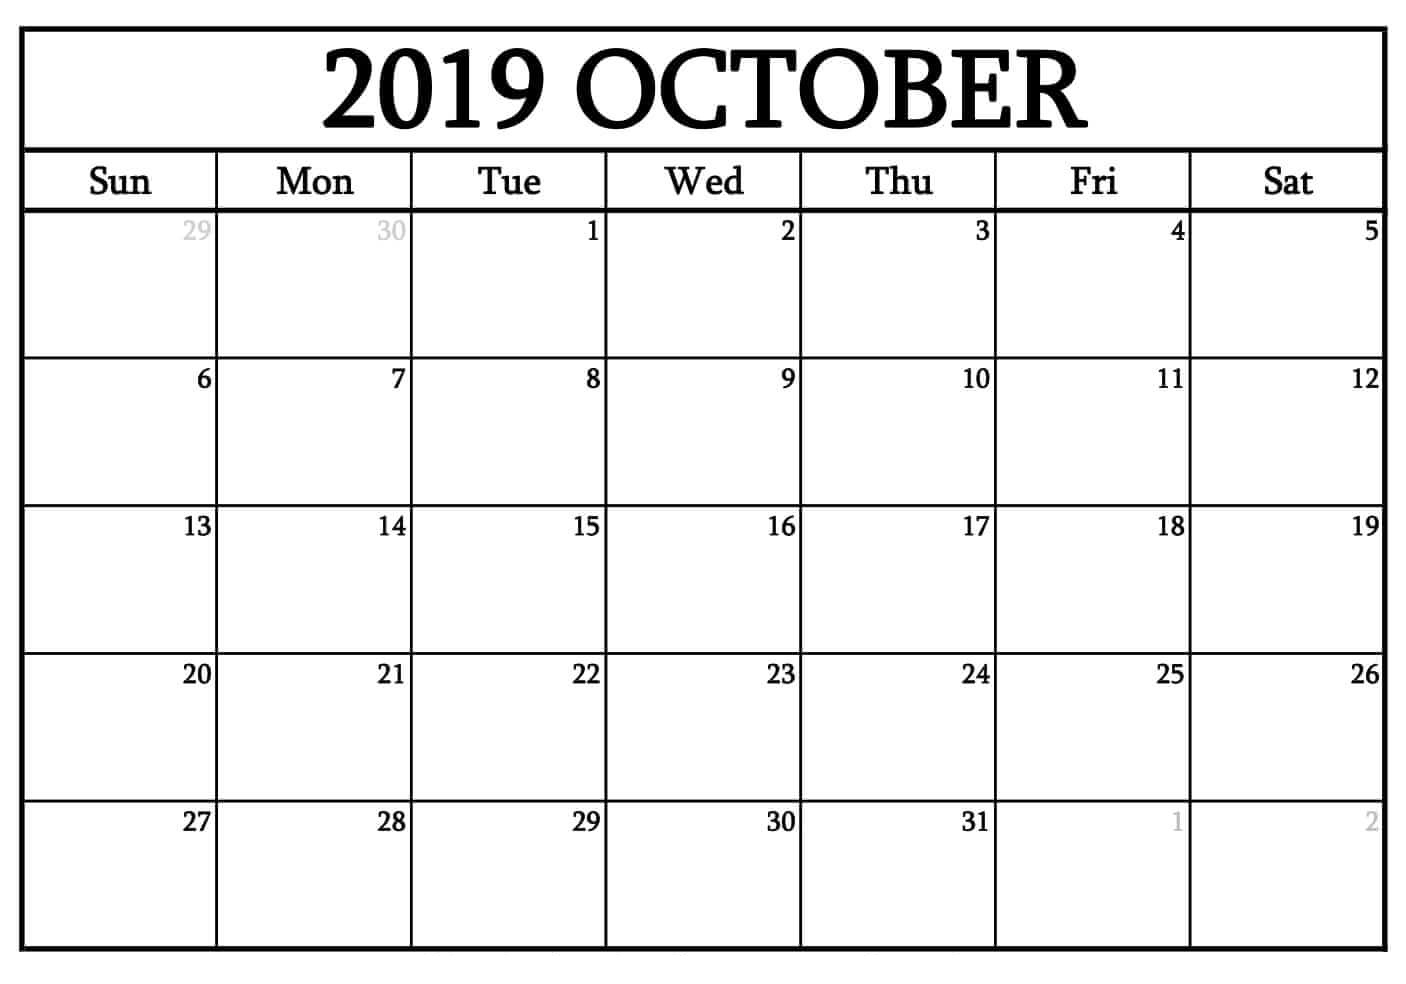 October 2019 Printable Calendar Word, Pdf By Month - Latest